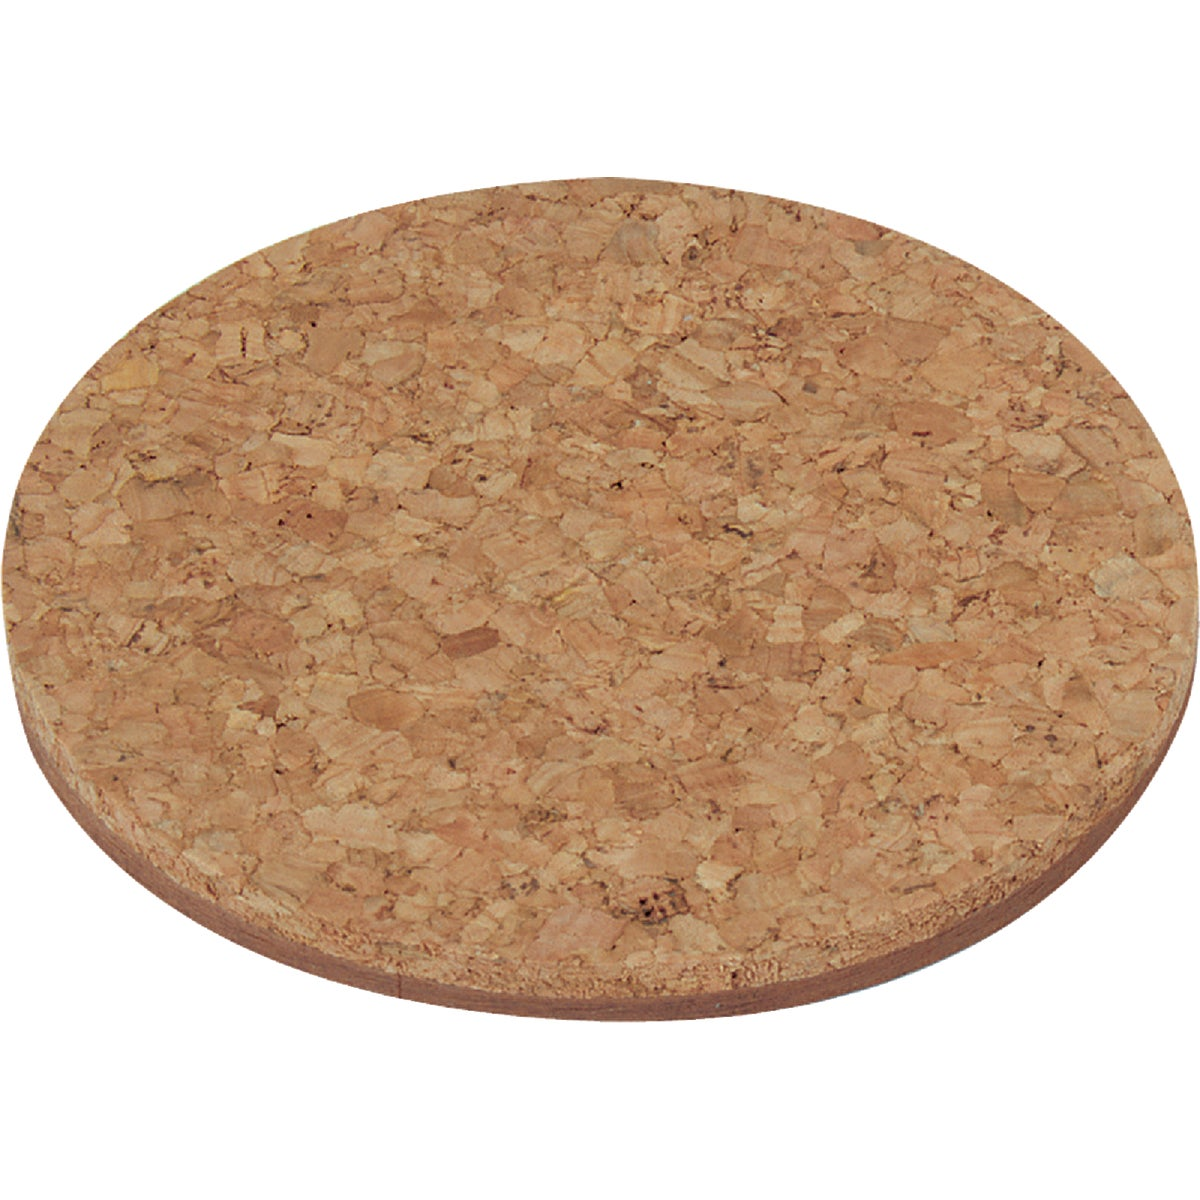 "10"" ECO CORK MAT - ECR10 by Plastec Products"